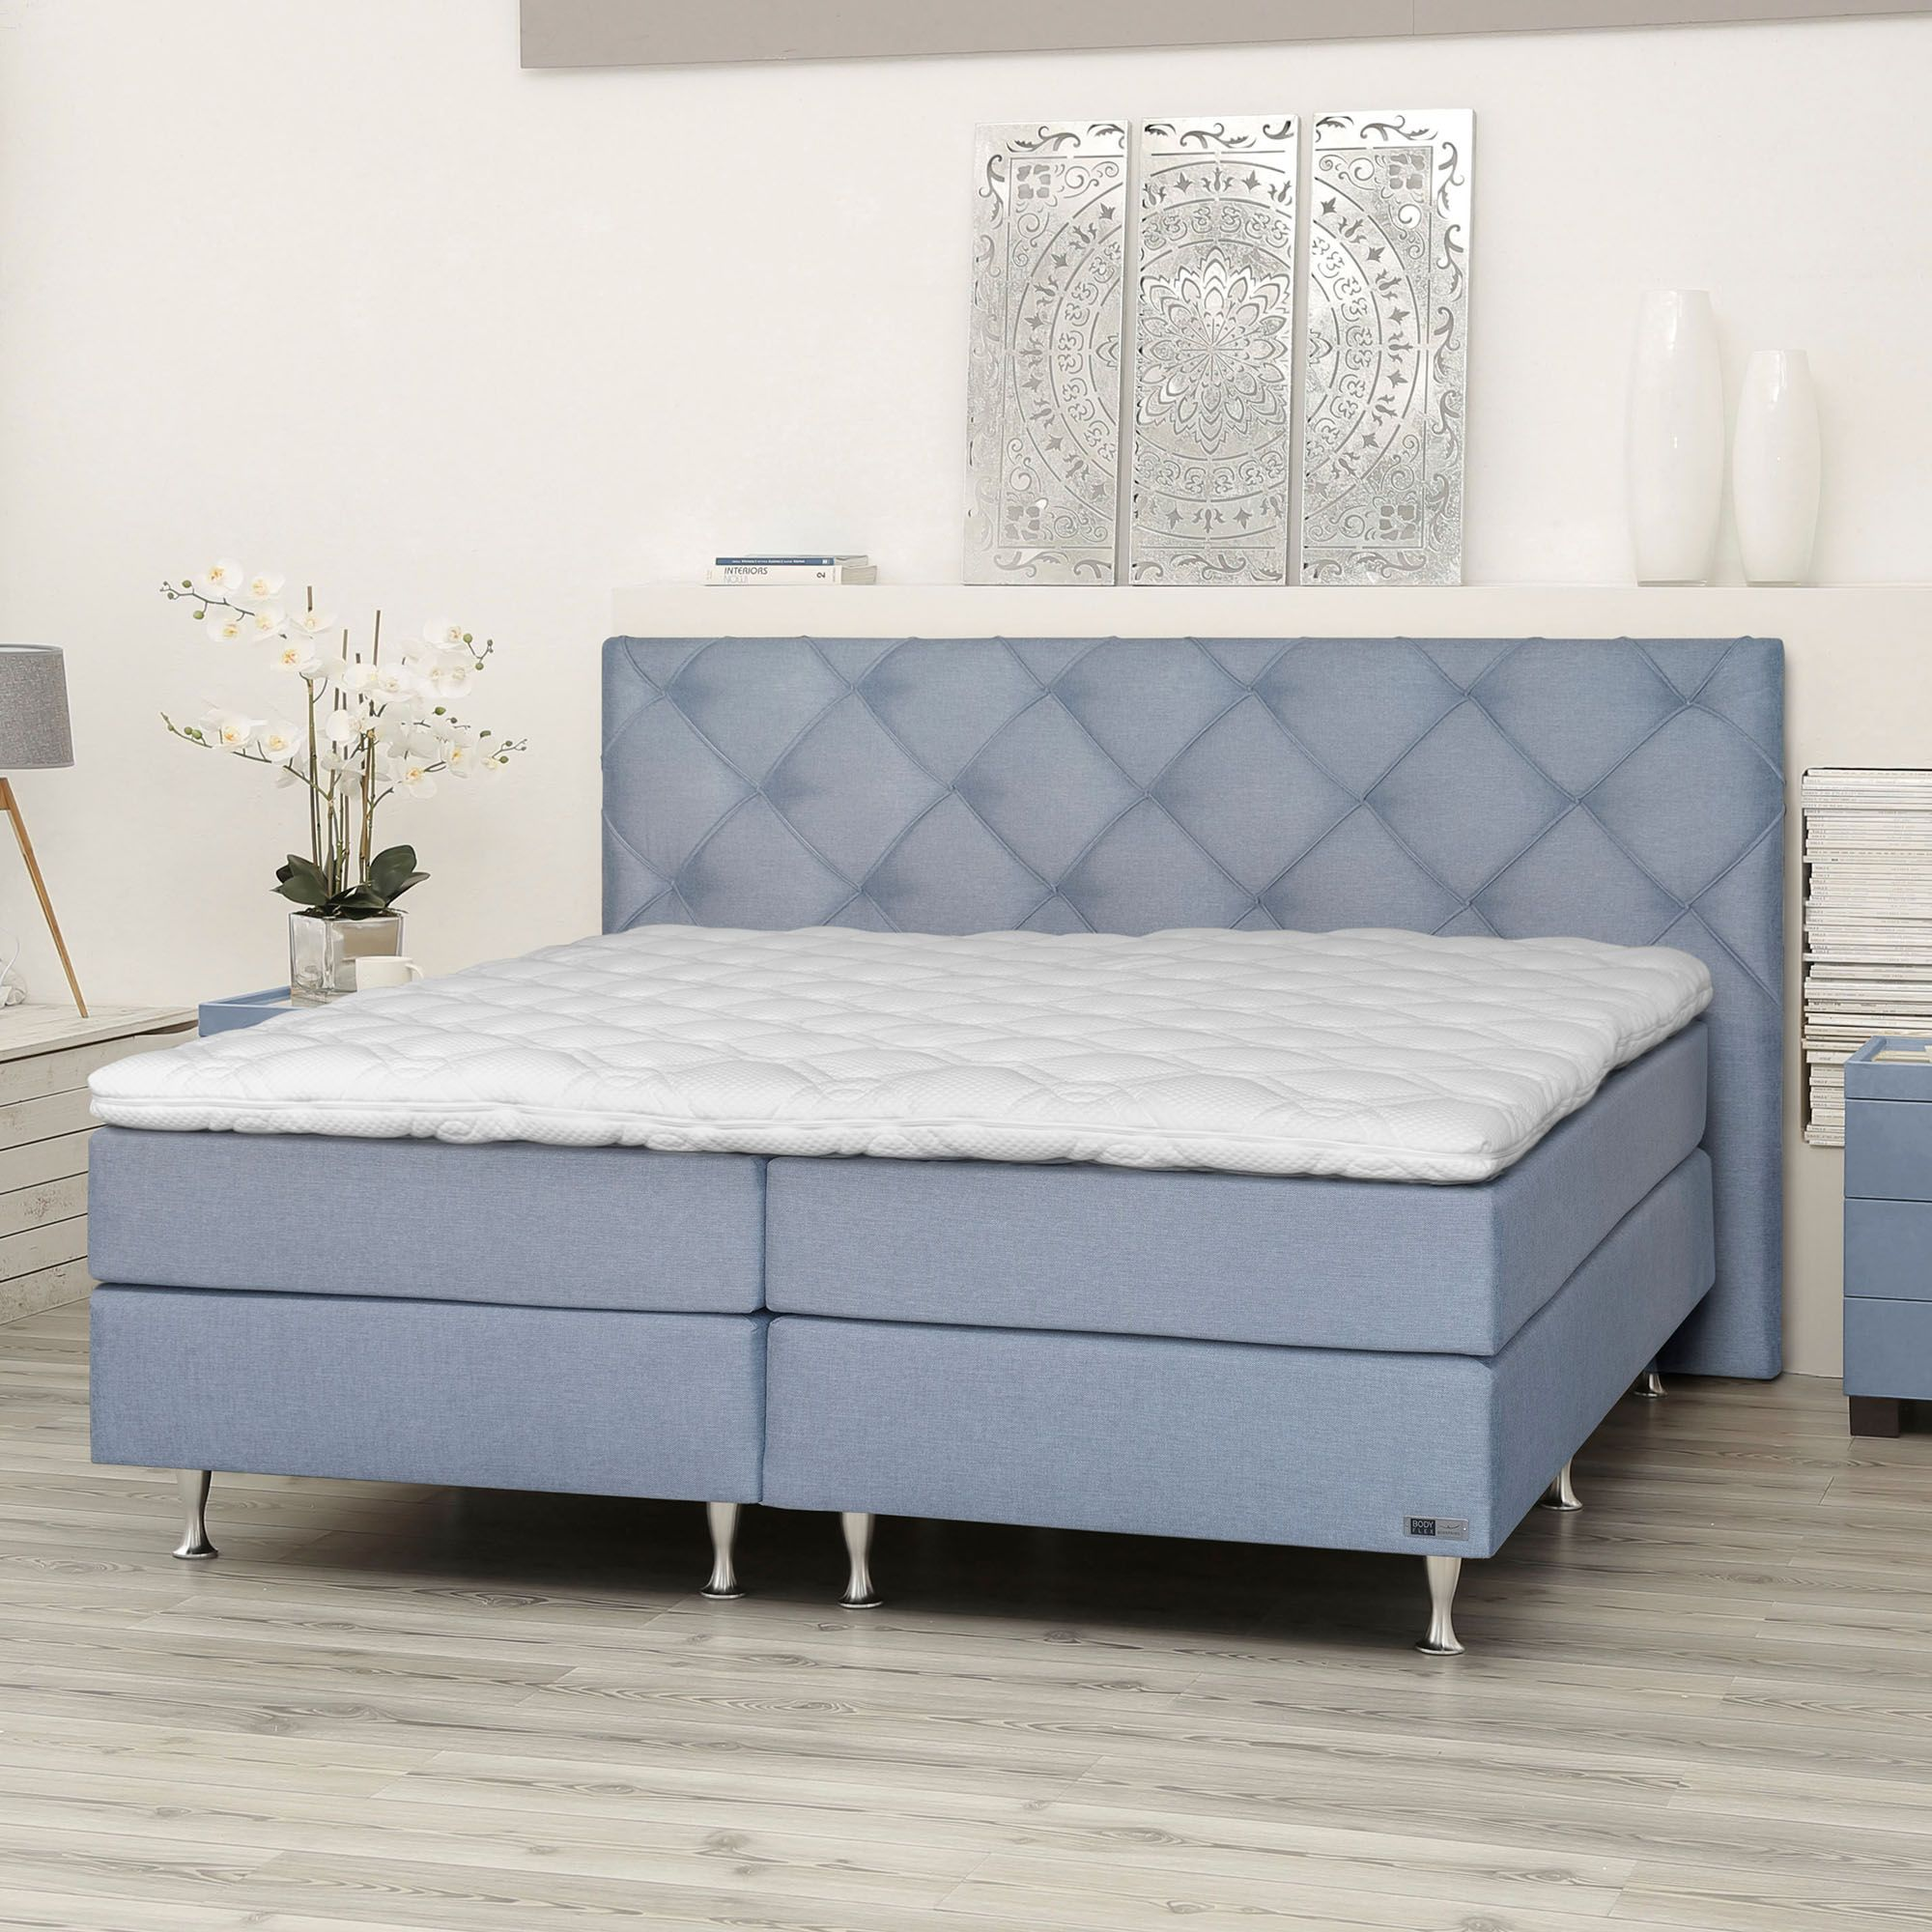 Beste Boxspringbetten Test 6 Beautiful Bodyflex Boxspringbett Test